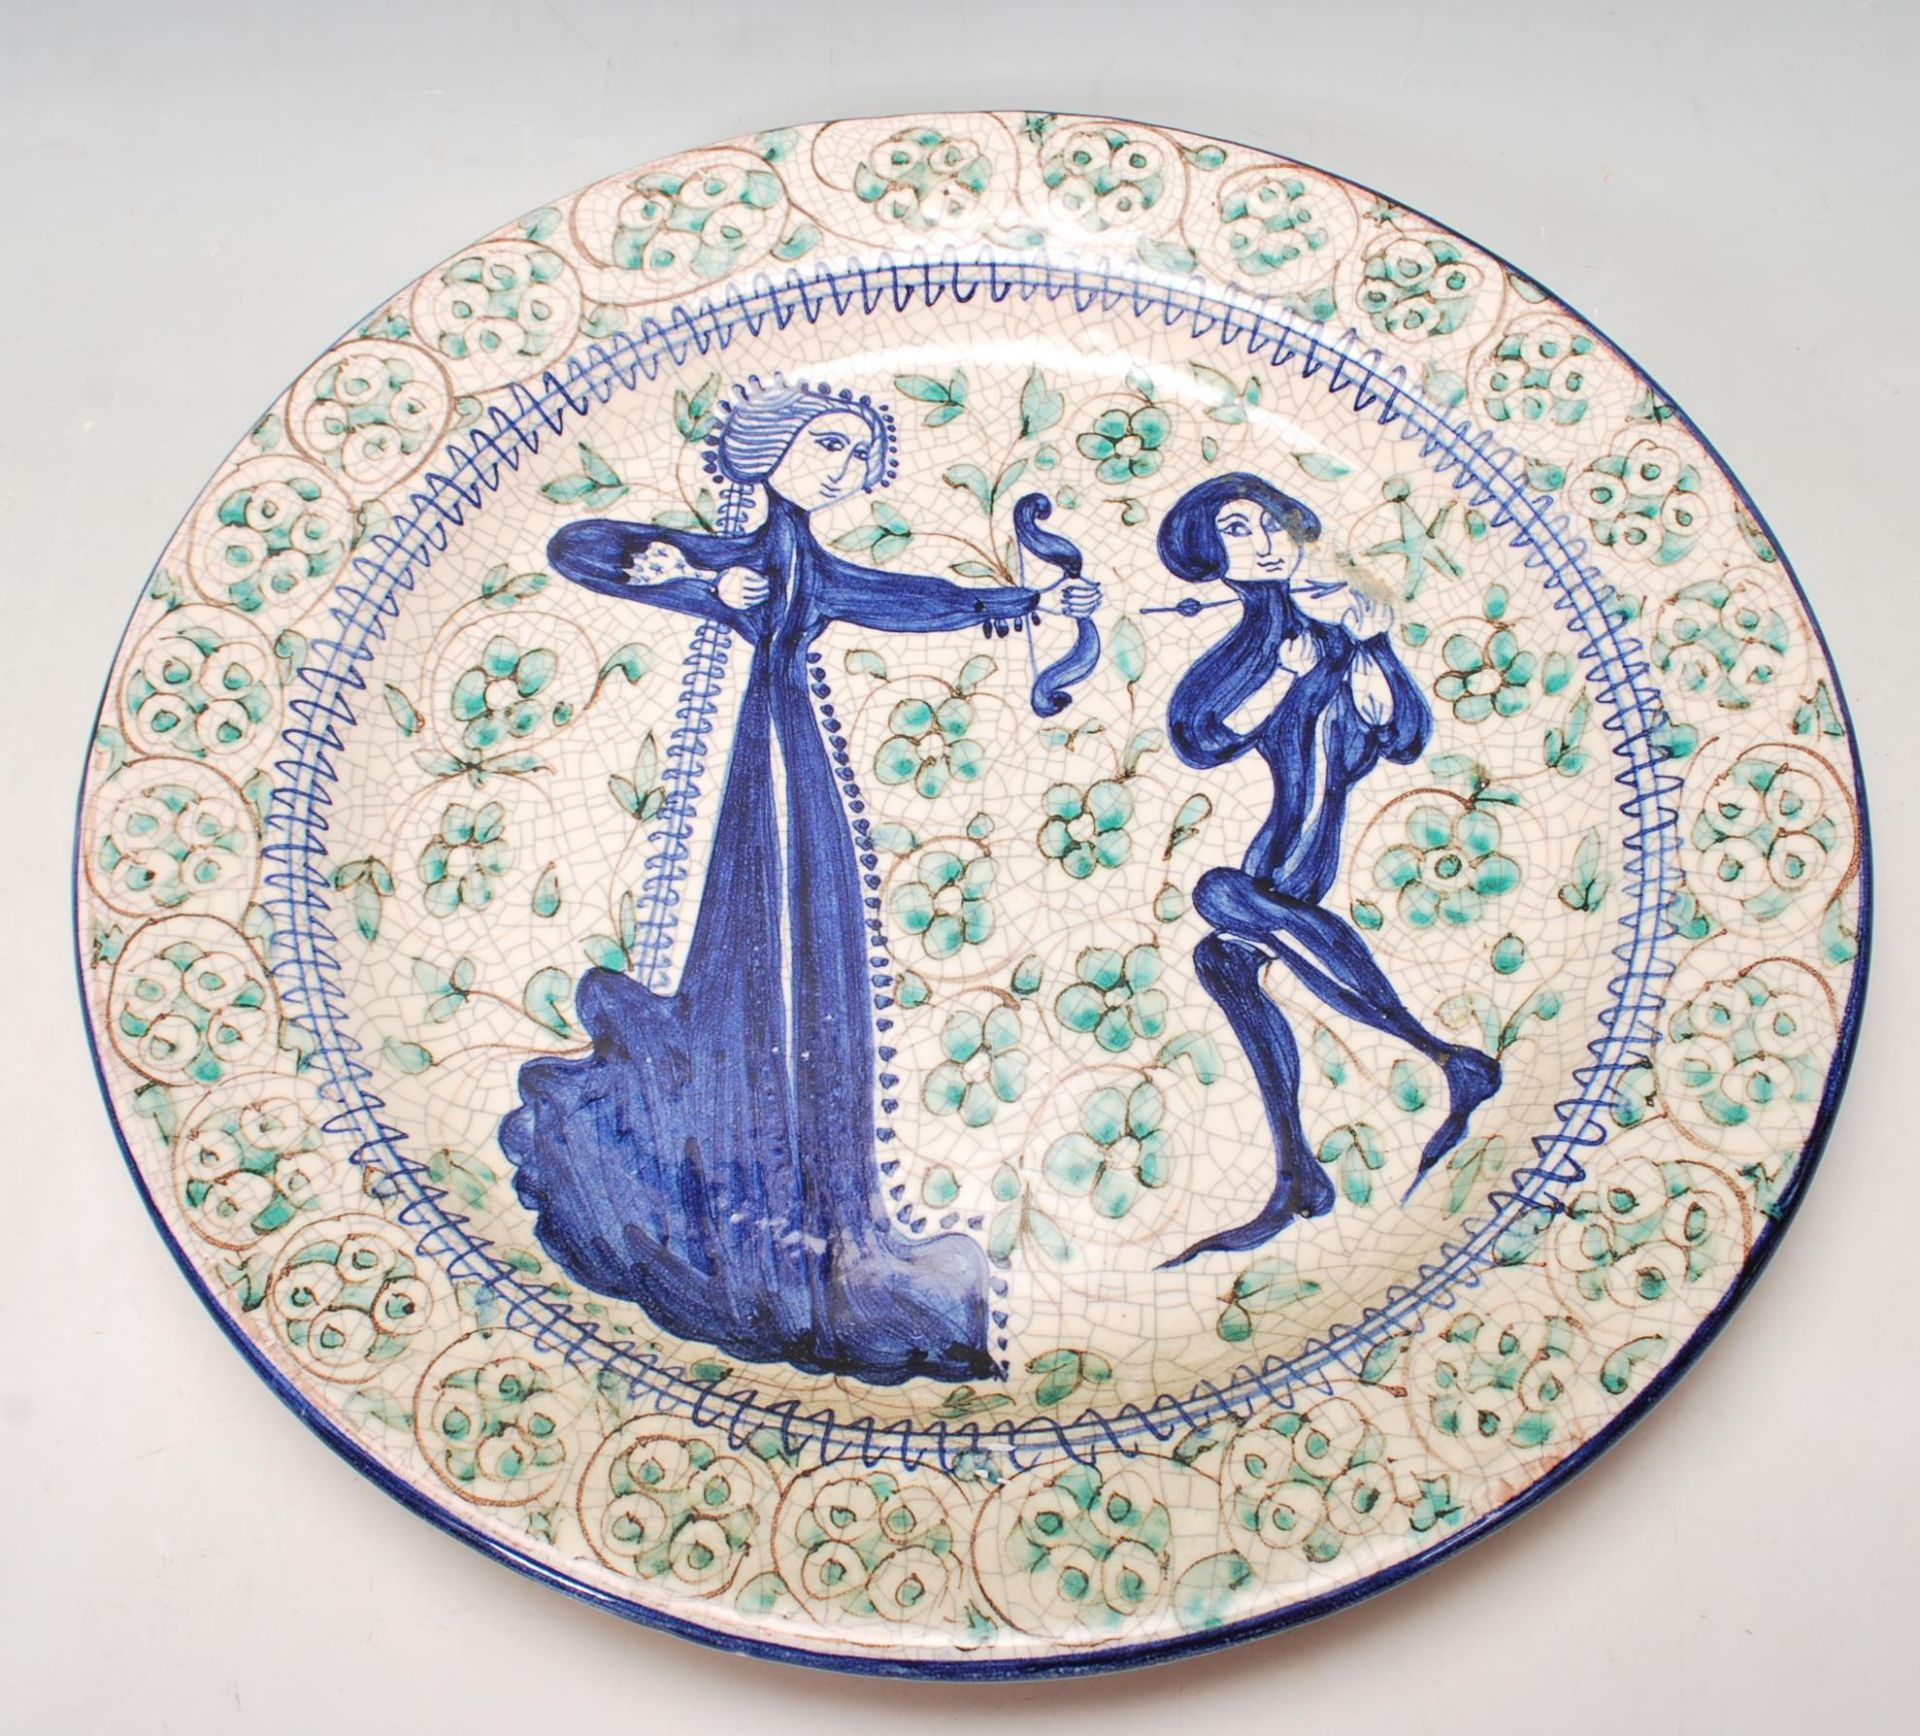 LATE 20TH CENTURY PERSIAN ISLAMIC FAIENCE CHARGER